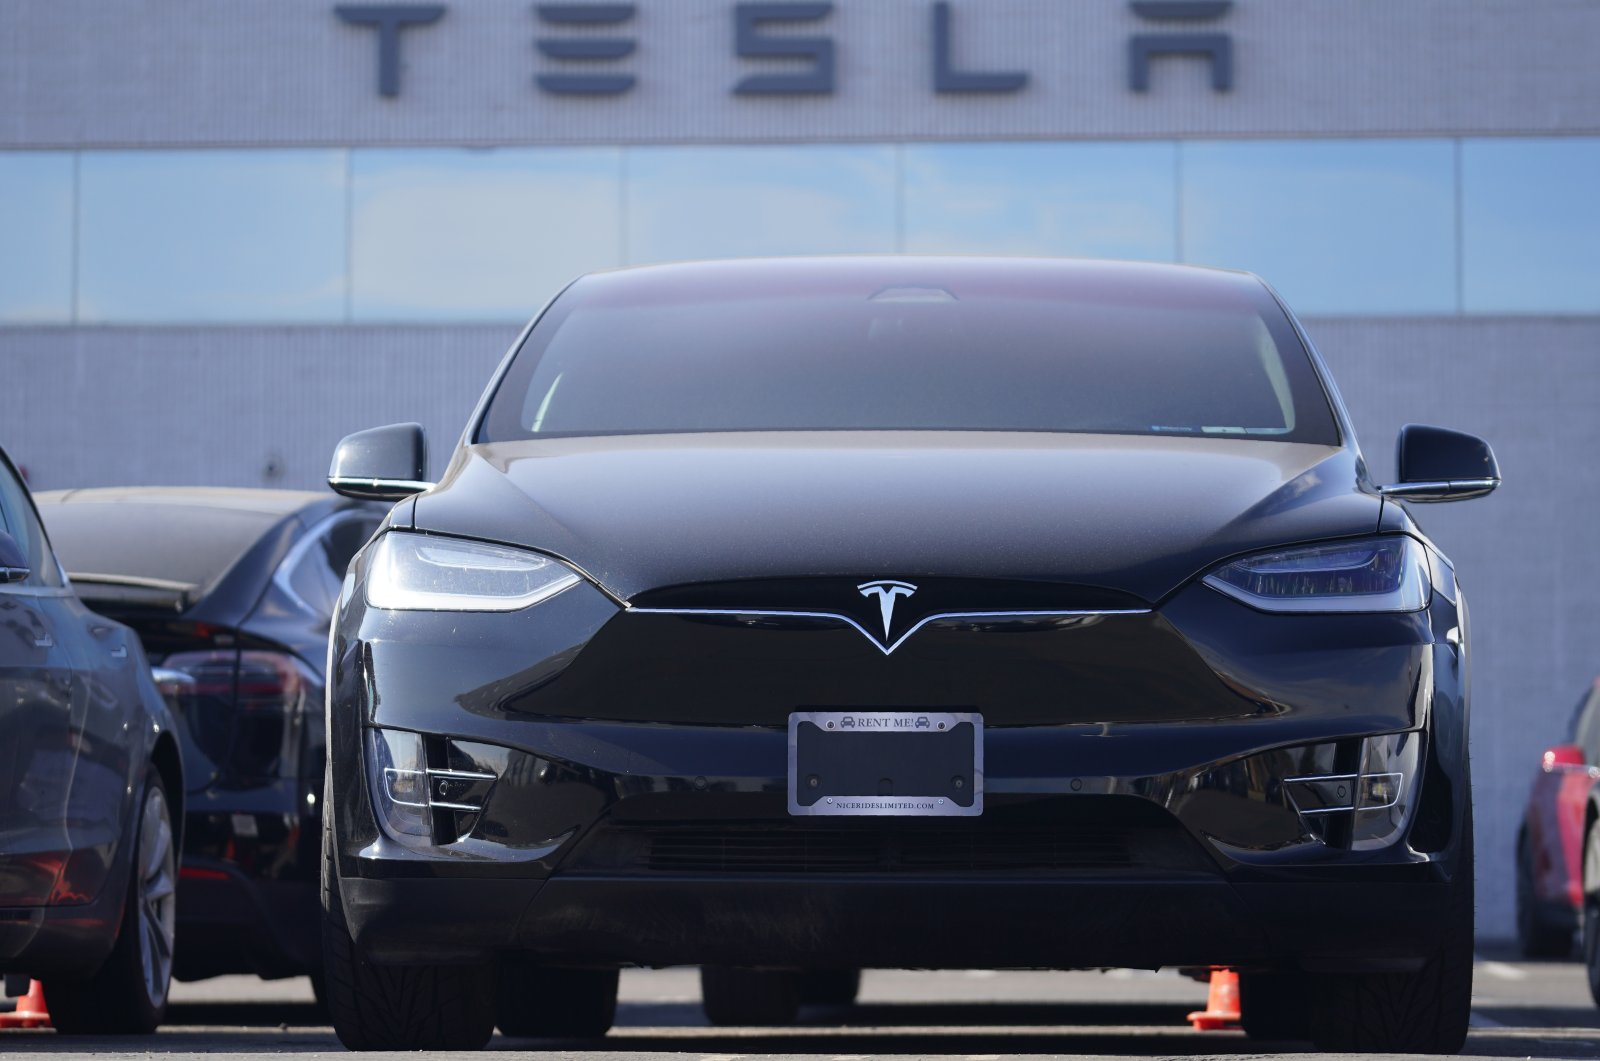 An unsold 2021 Model X sports-utility vehicle sits at a Tesla dealership, in Littleton, Colorado, U.S., Jan. 24, 2021. (AP Photo)